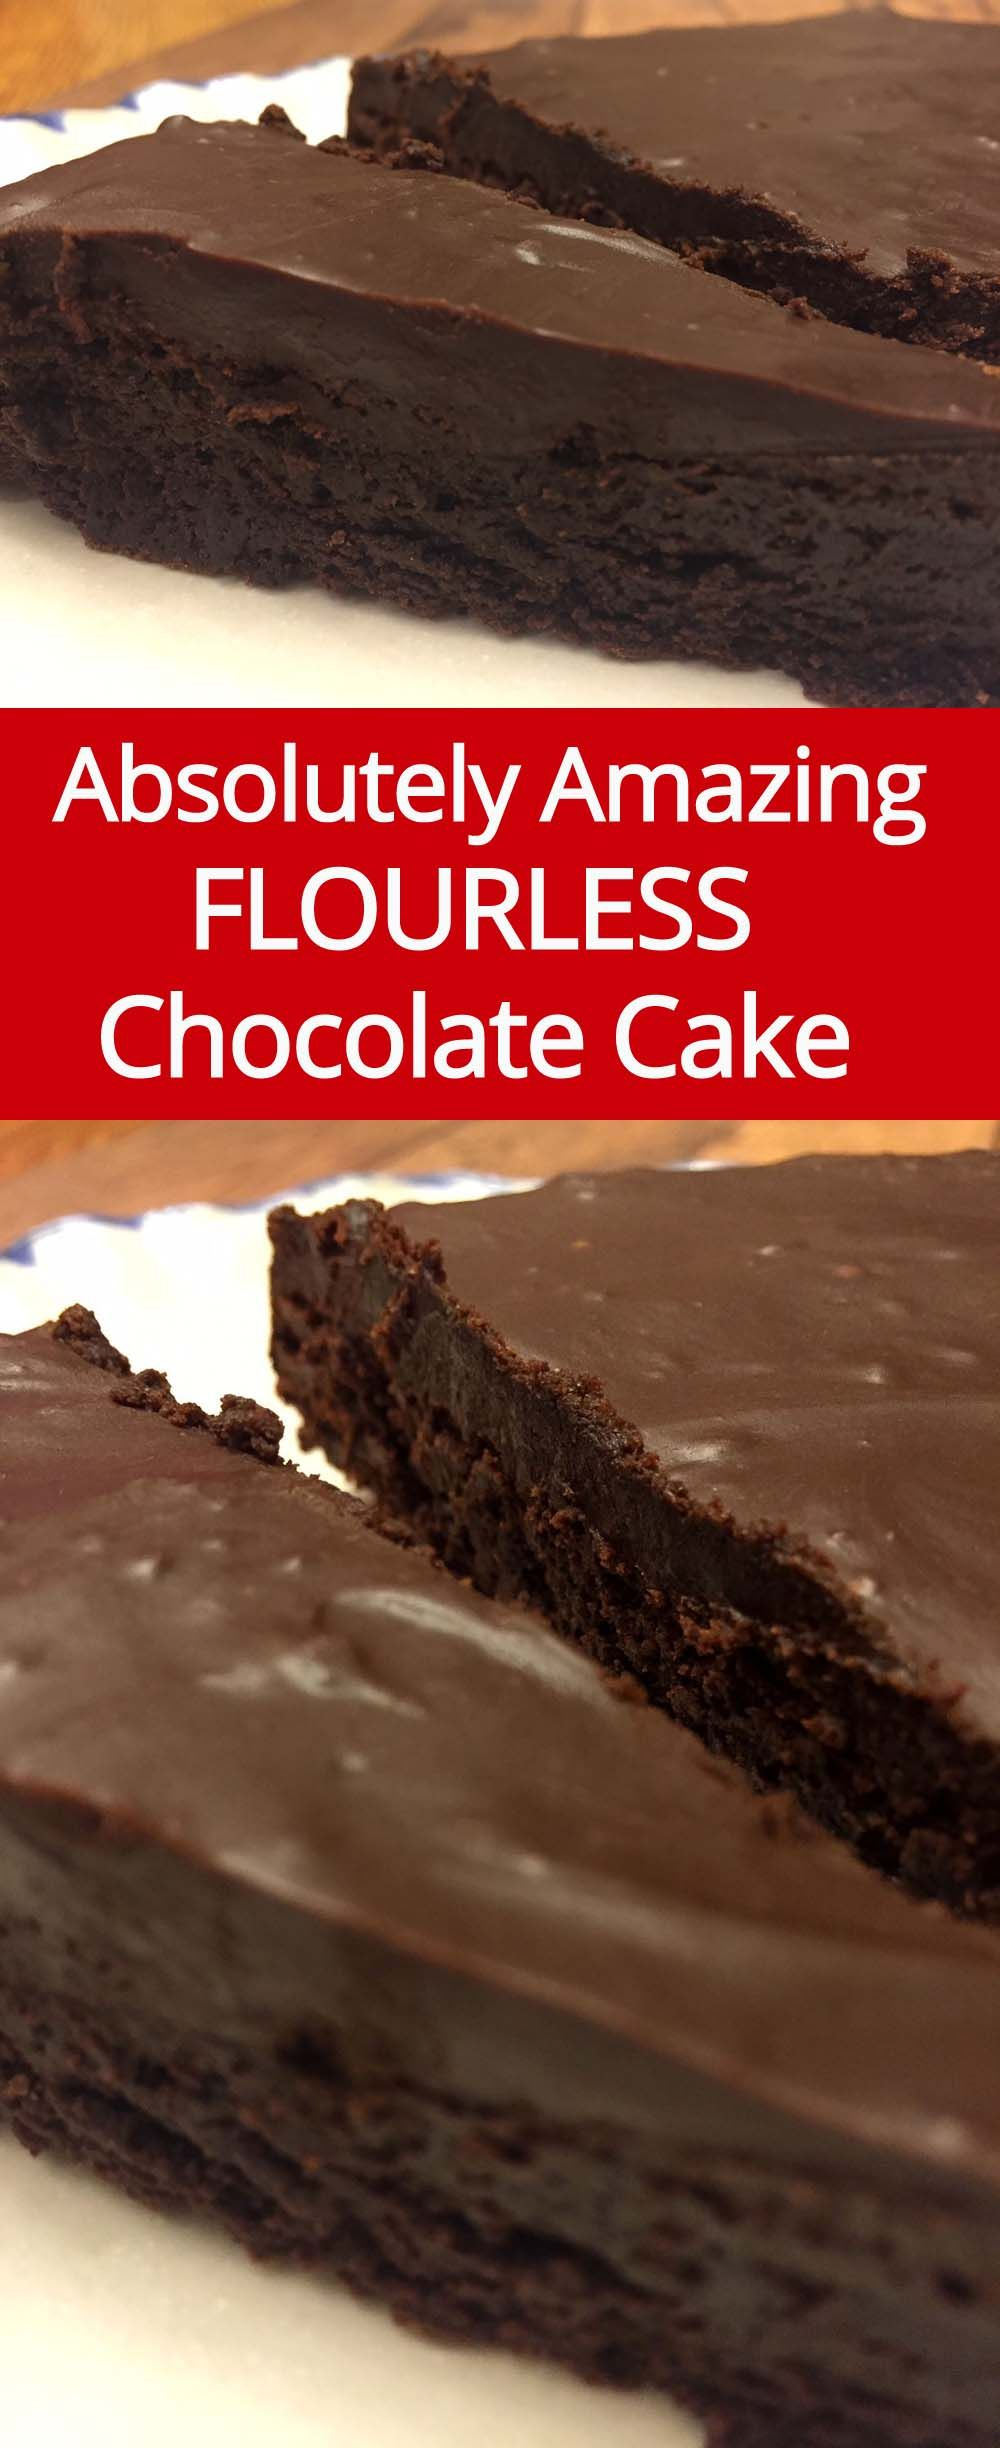 Flourless Chocolate Cake Recipe (Easy, Gluten-Free)